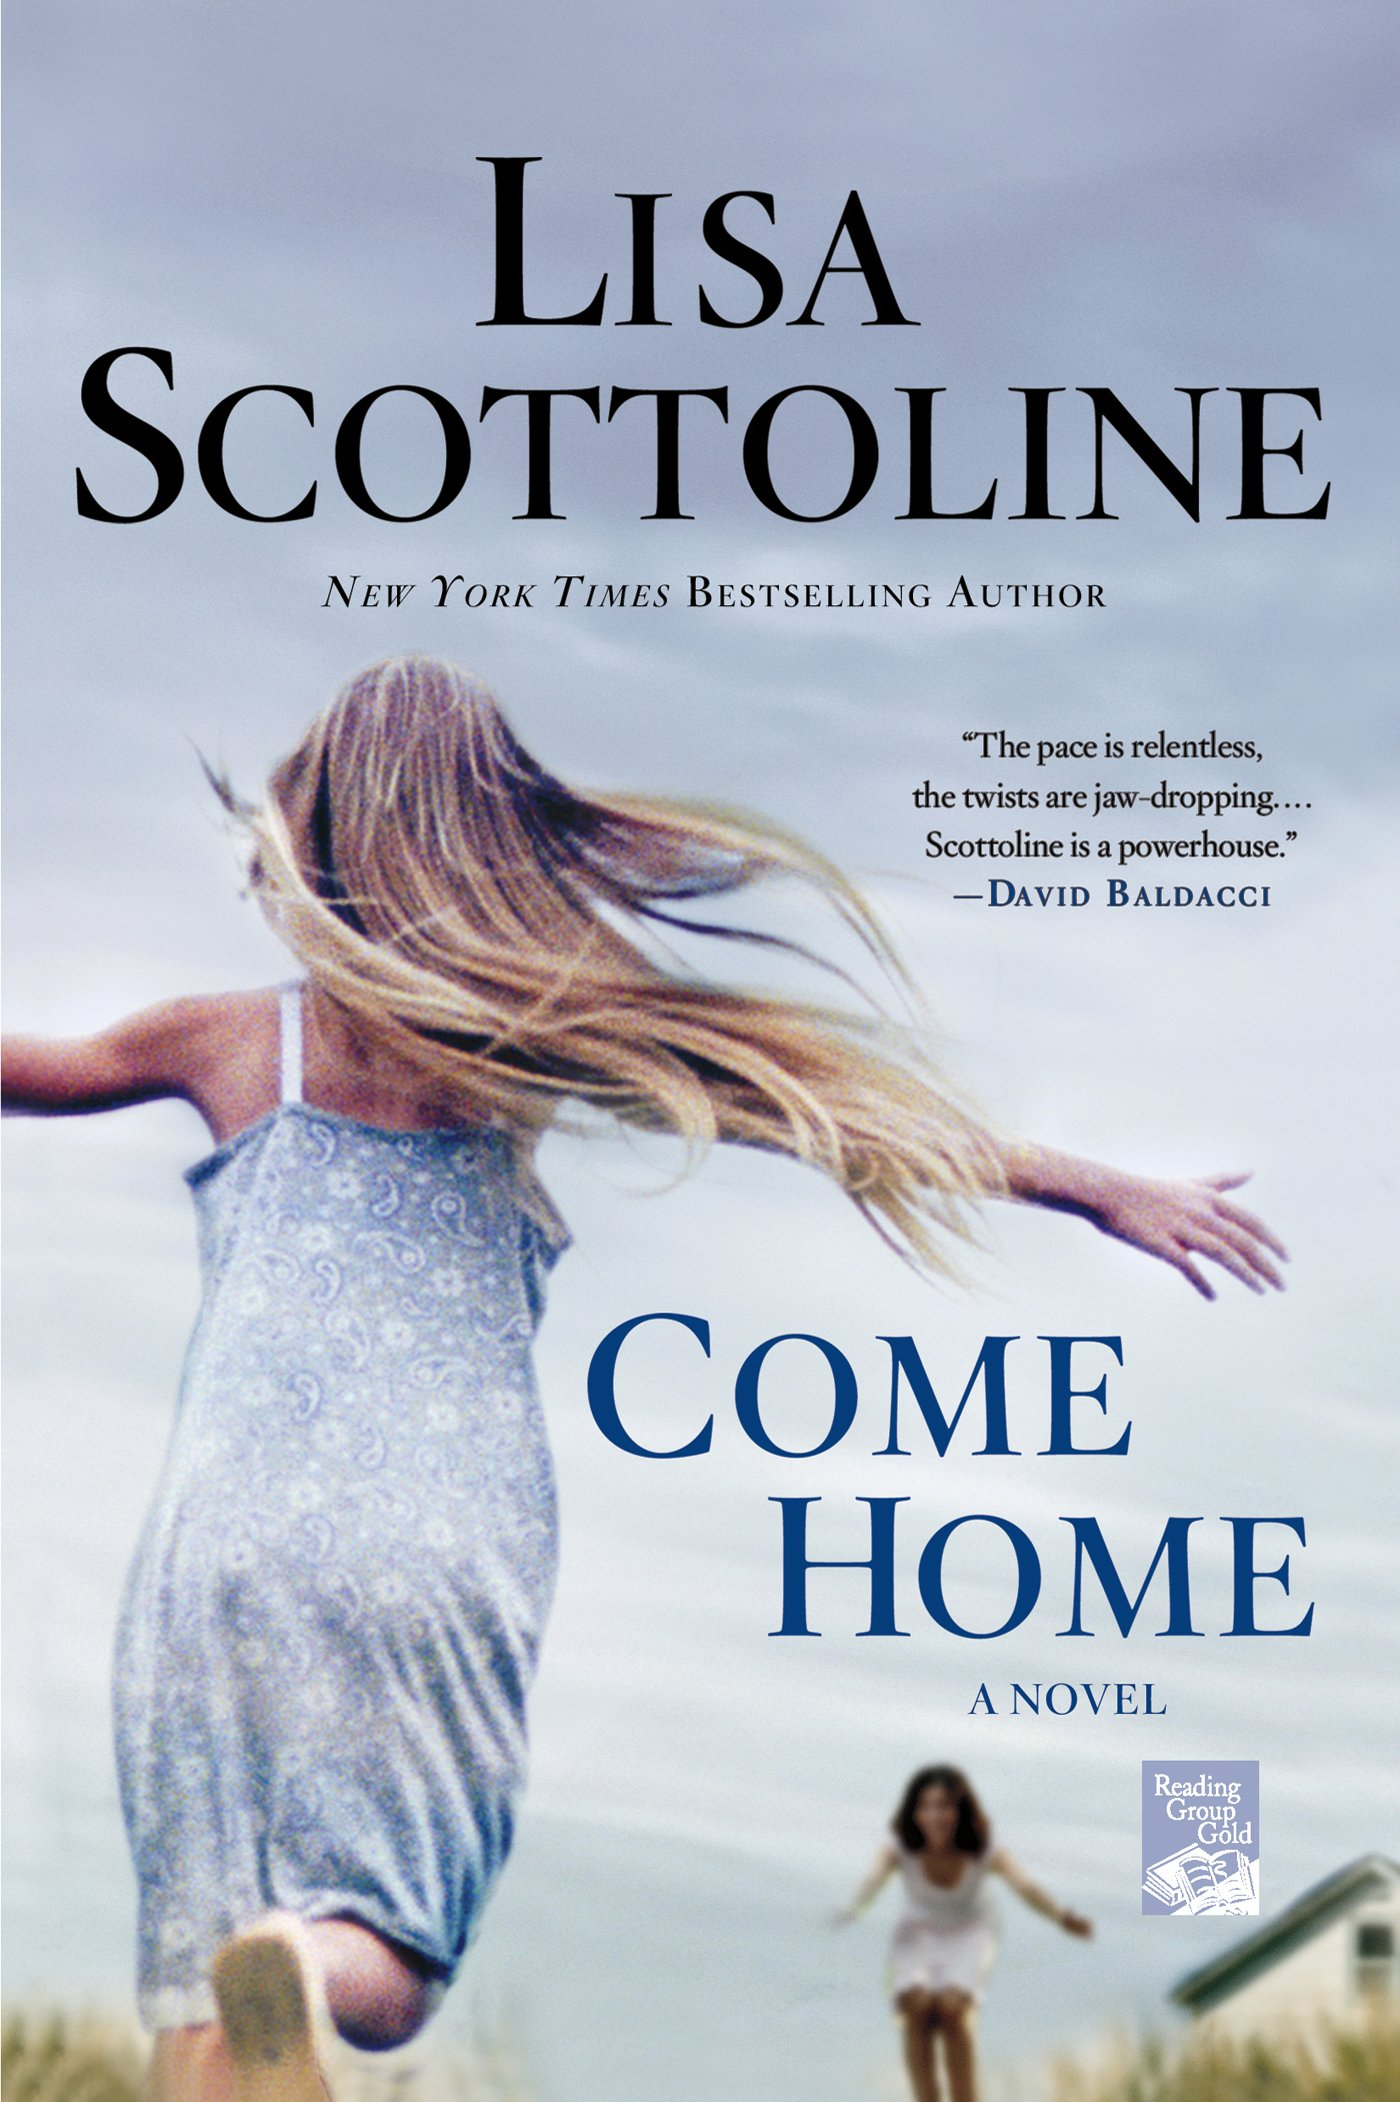 Book Cover of Come Home